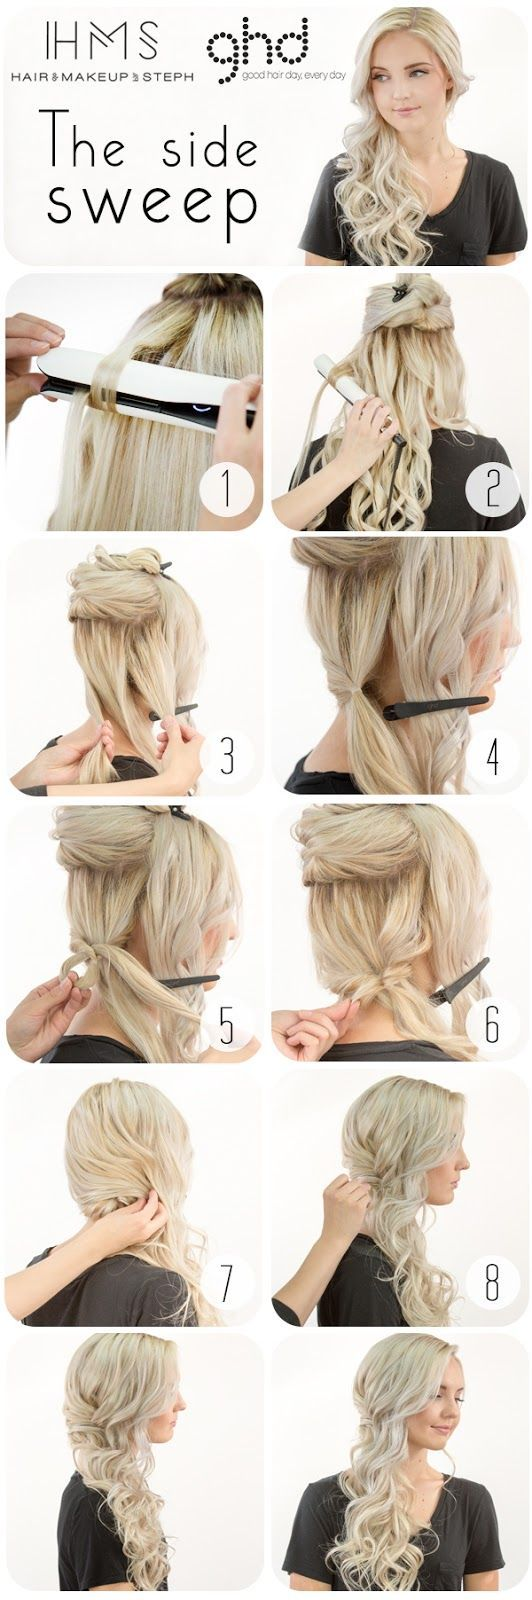 132 best Hair Updo images on Pinterest | Wedding hair styles ...